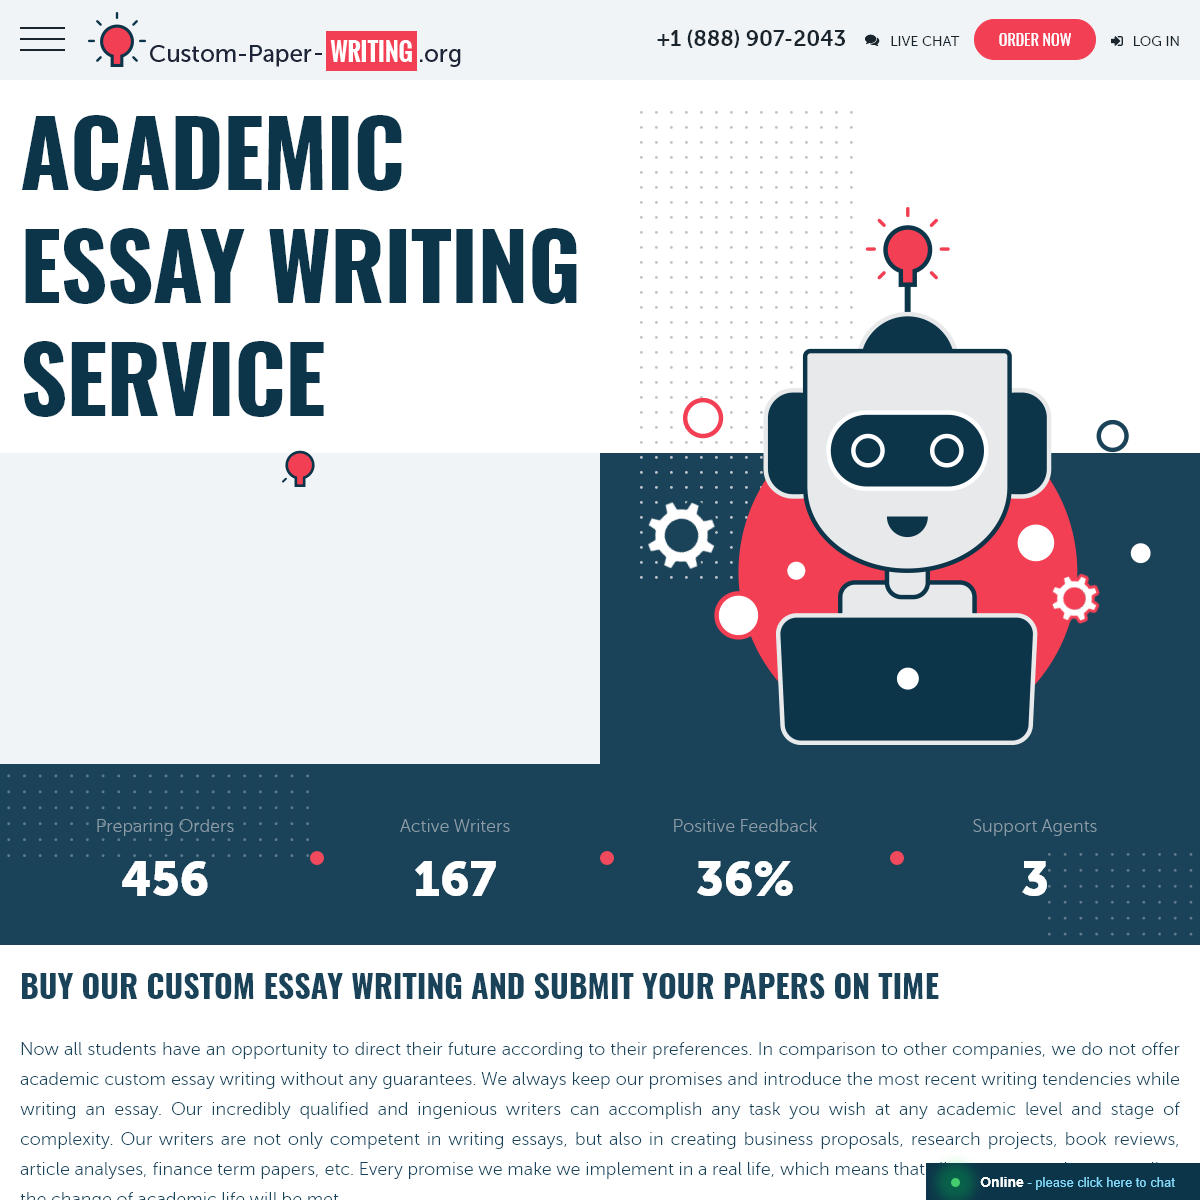 Academic Custom Essay Writing Service - Buy Papers Cheap Online